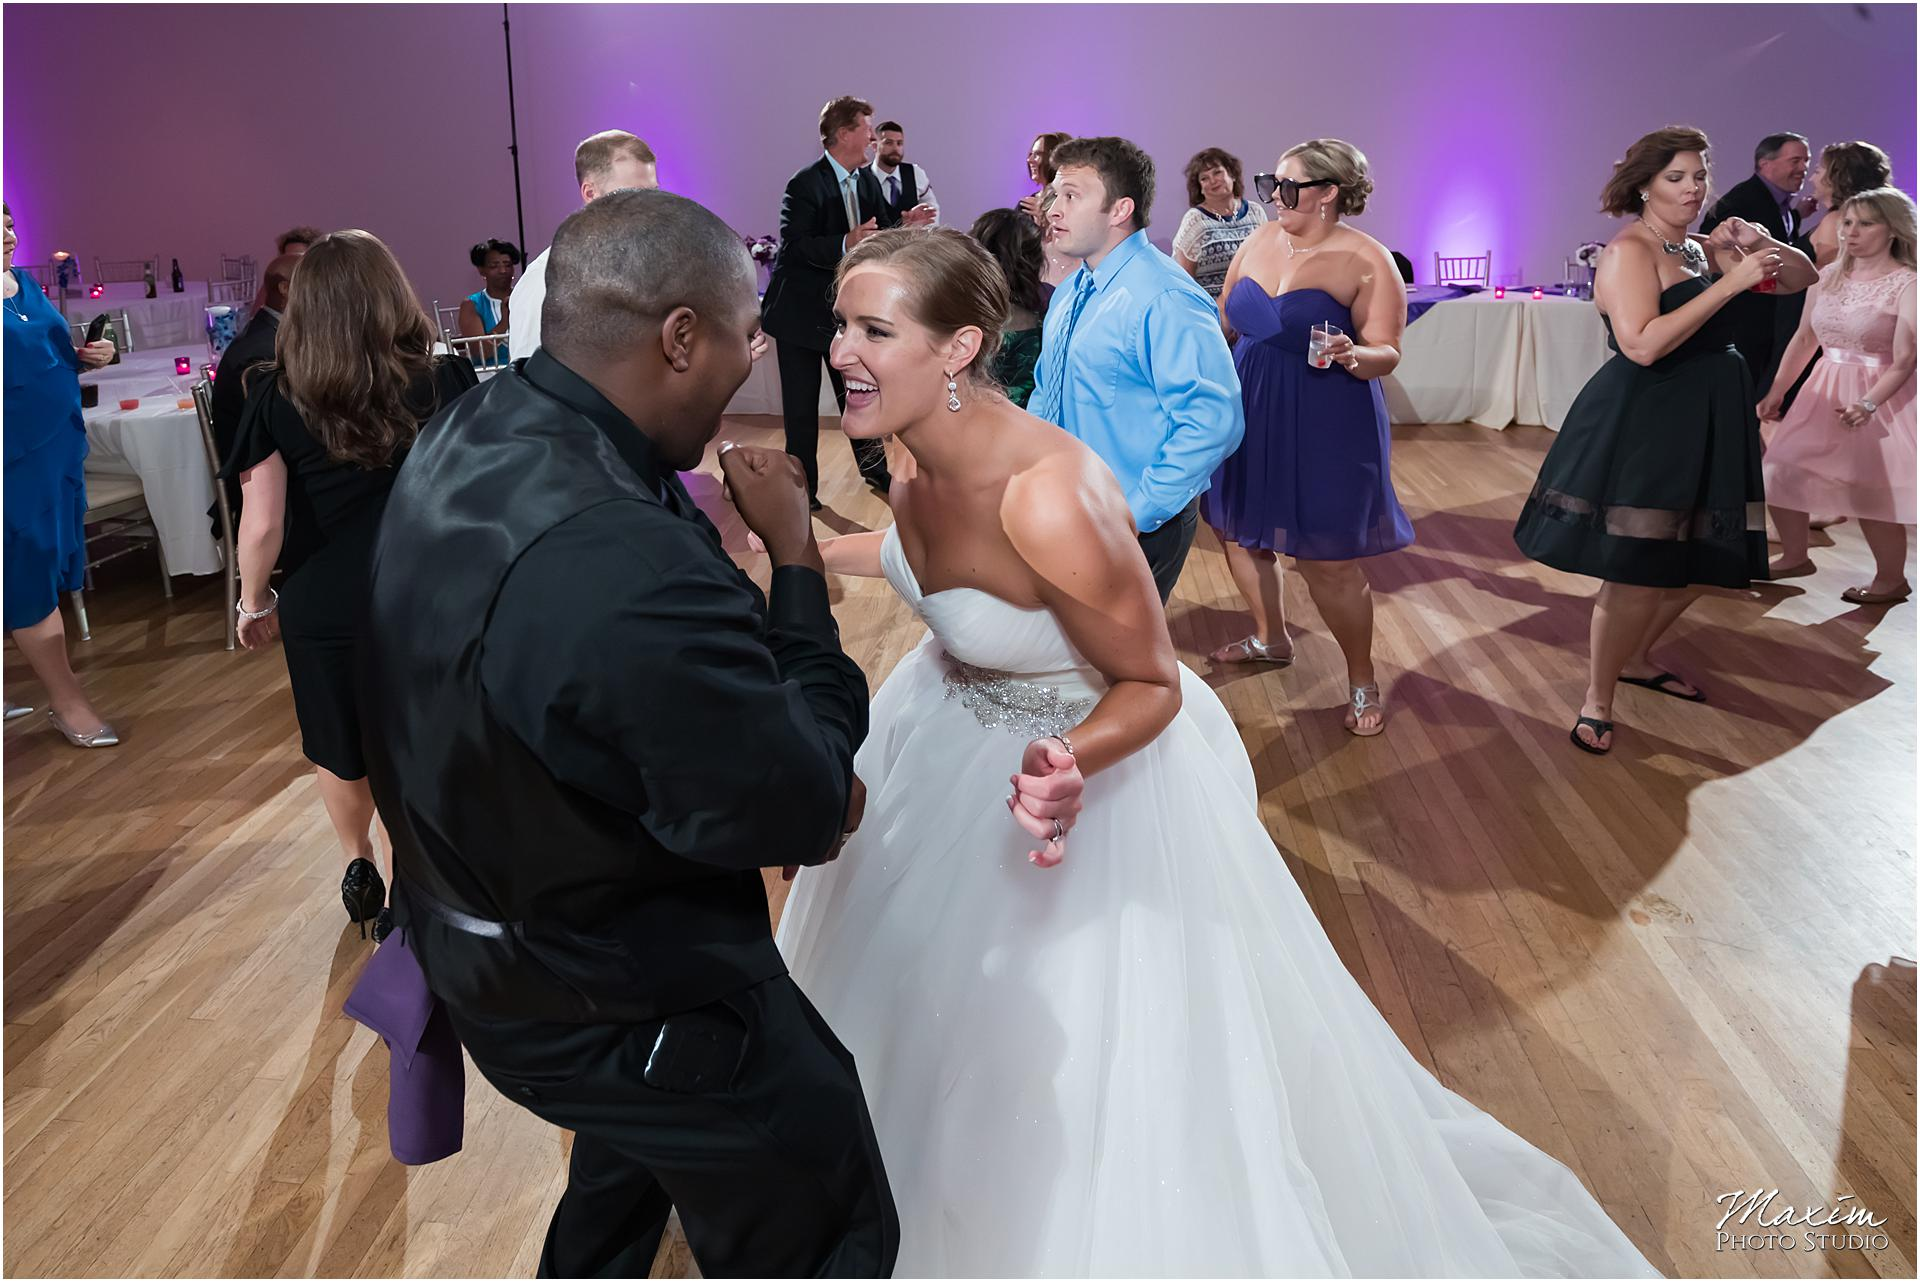 The Center Cincinnati Wedding Reception Bride groom dance